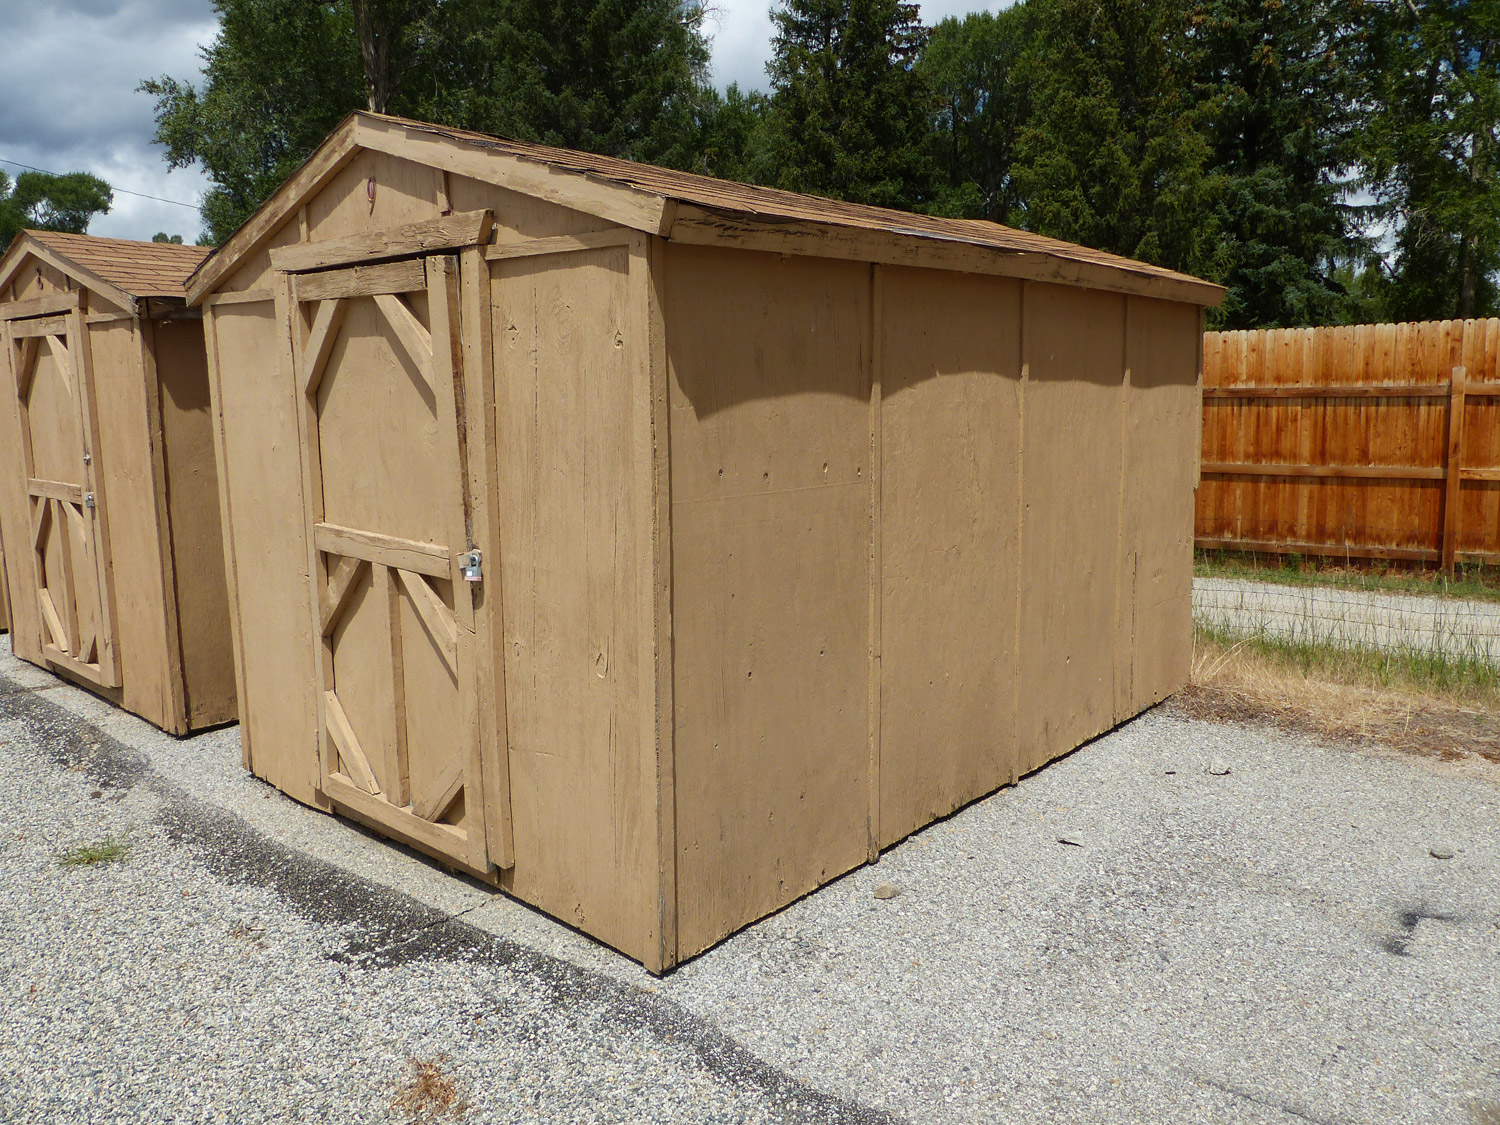 kits gallery home large rubbermaid storage decoration shed lowes outdoor garden sheds vertical cheap